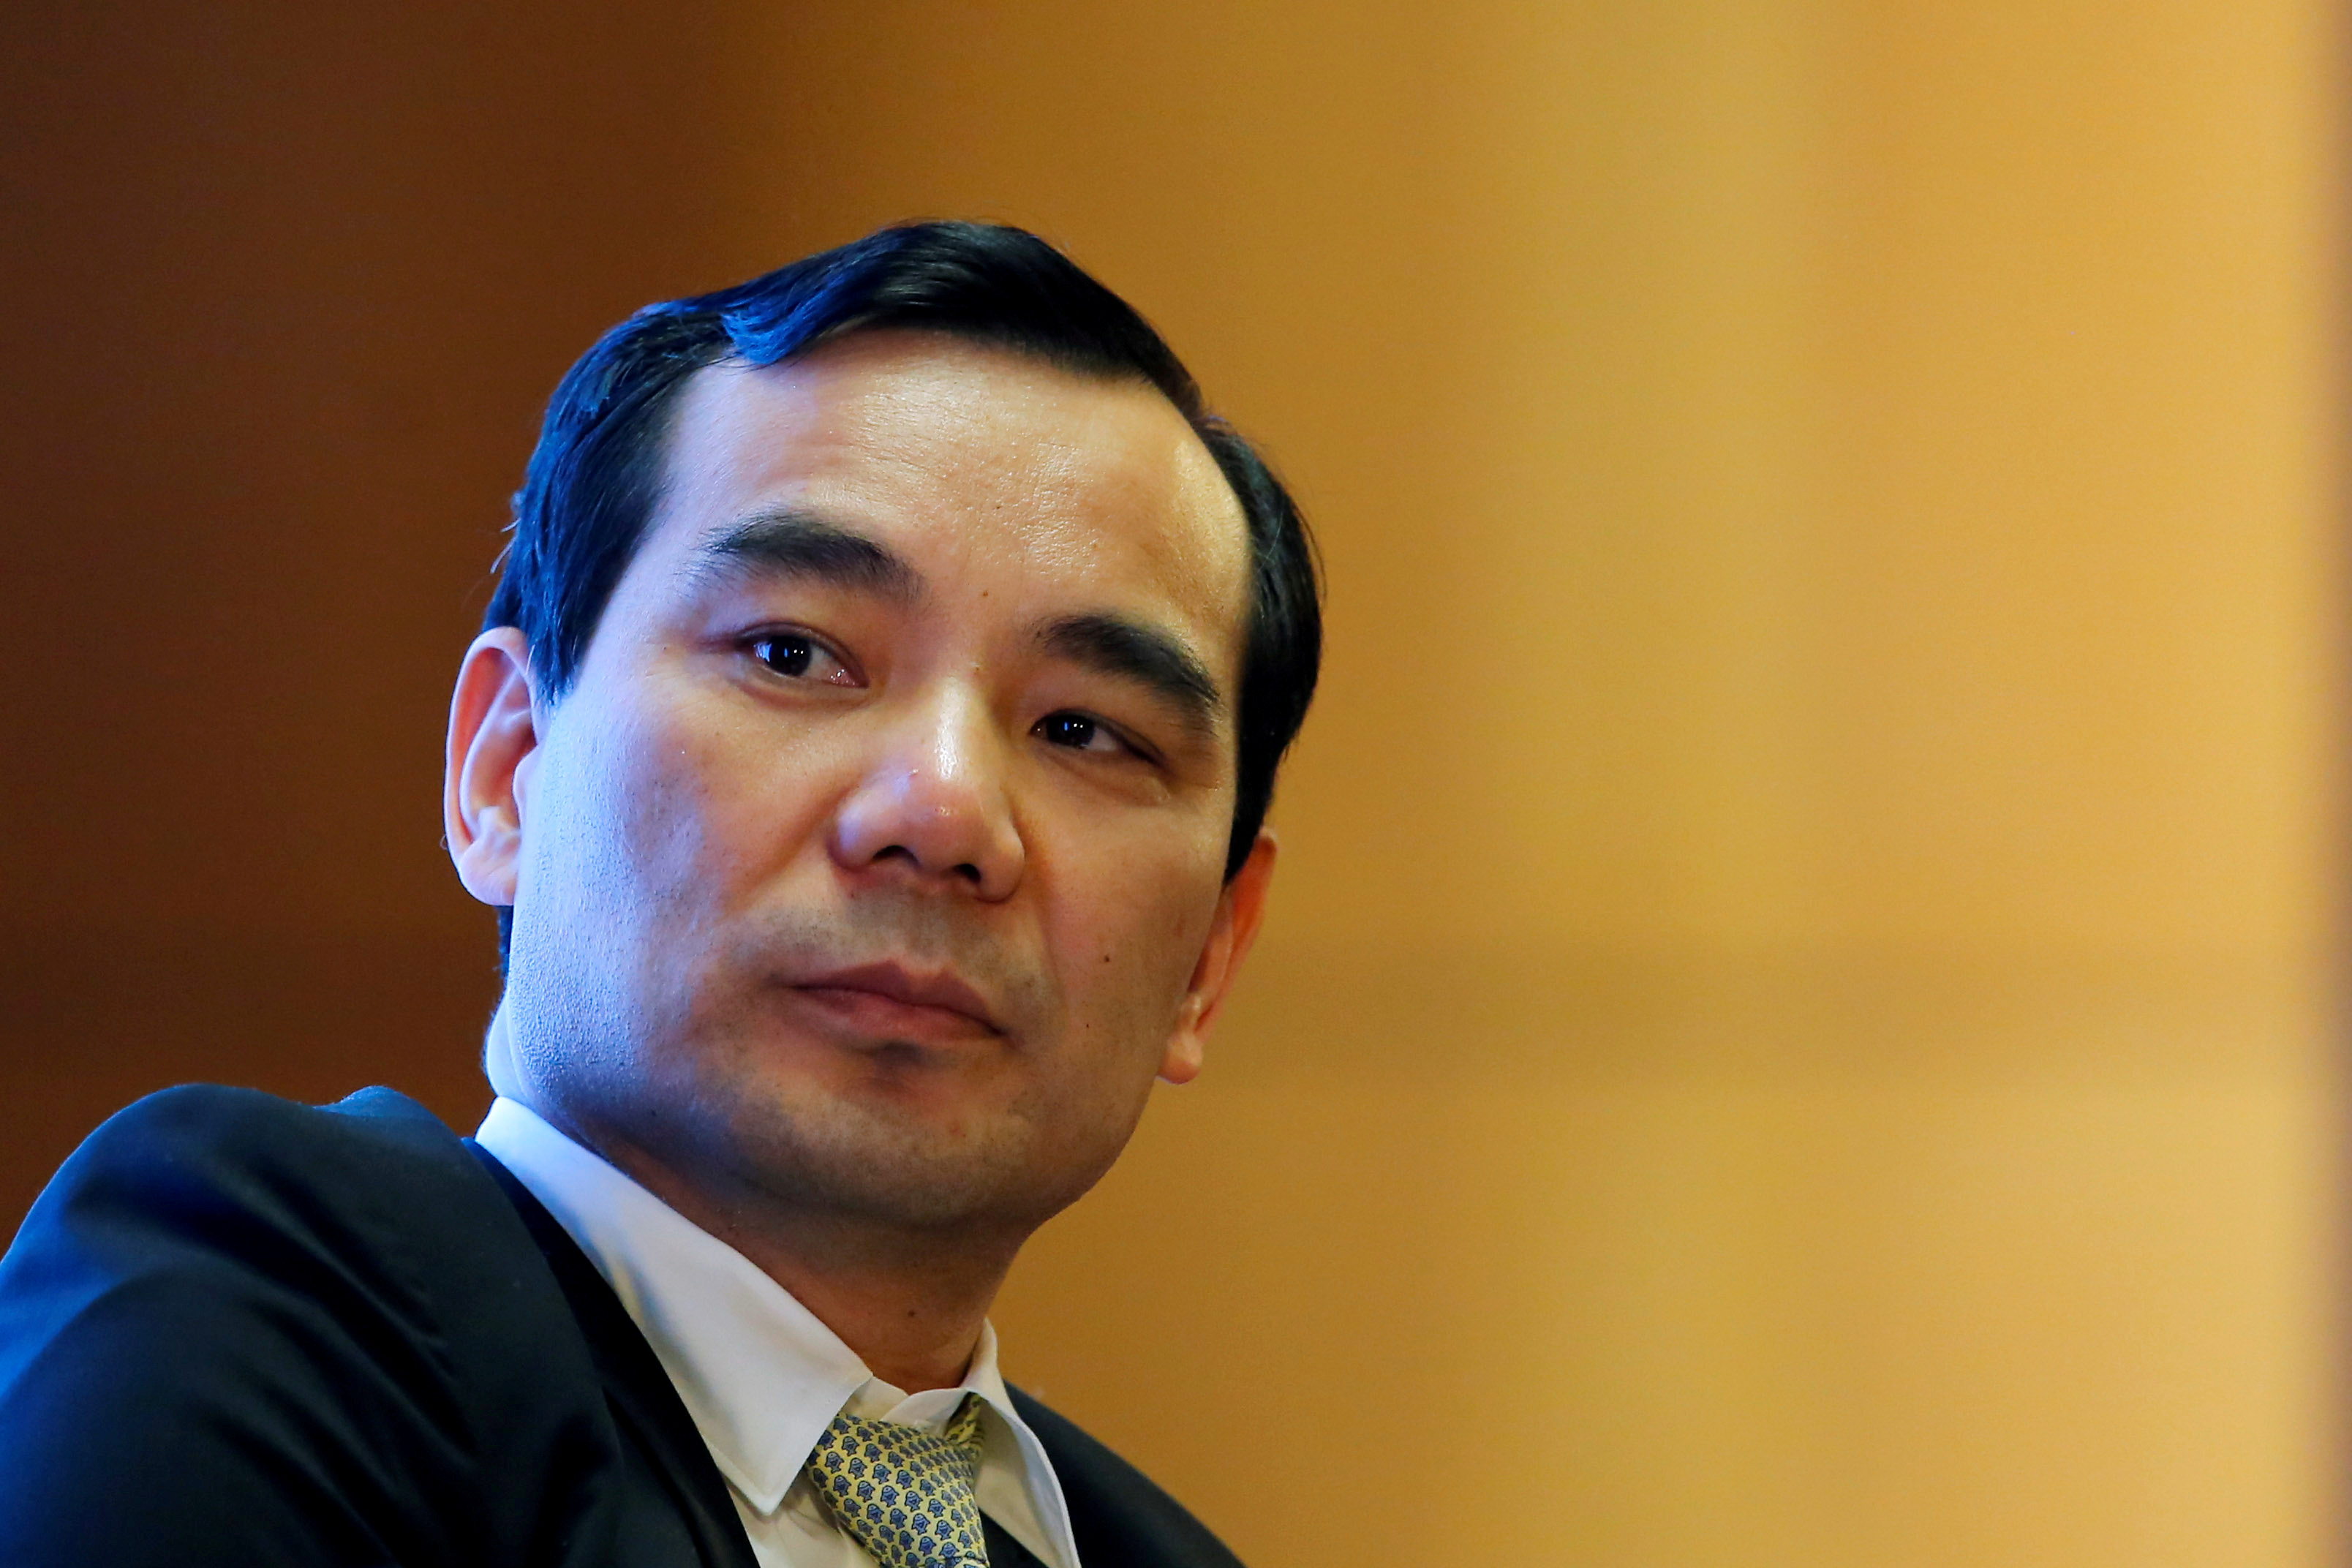 FILE PHOTO: Chairman of Anbang Insurance Group Wu Xiaohui attends the China Development Forum in Beijing